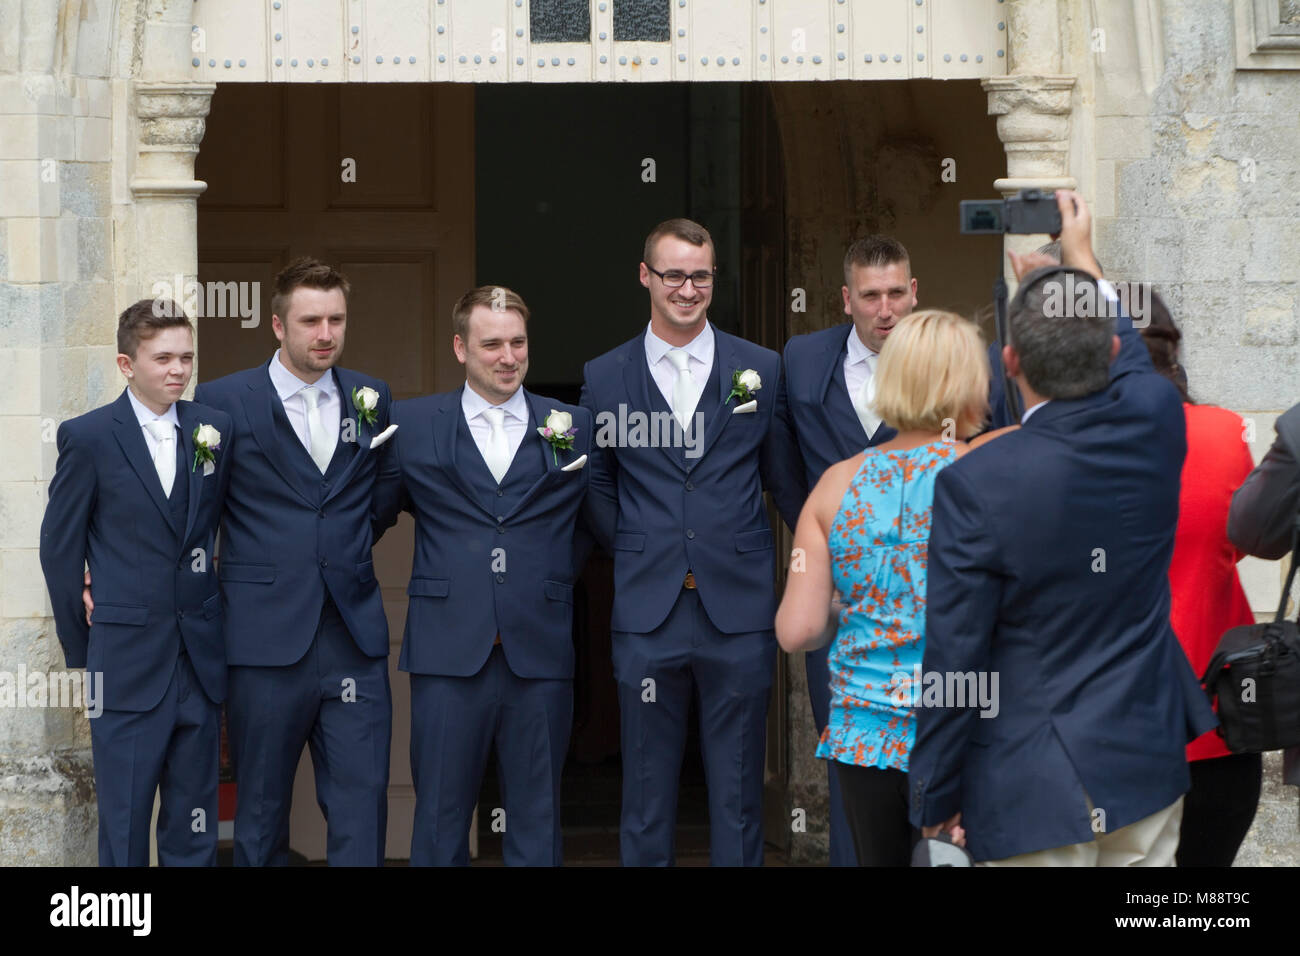 The groom's party wearing matching blue suits - Stock Image